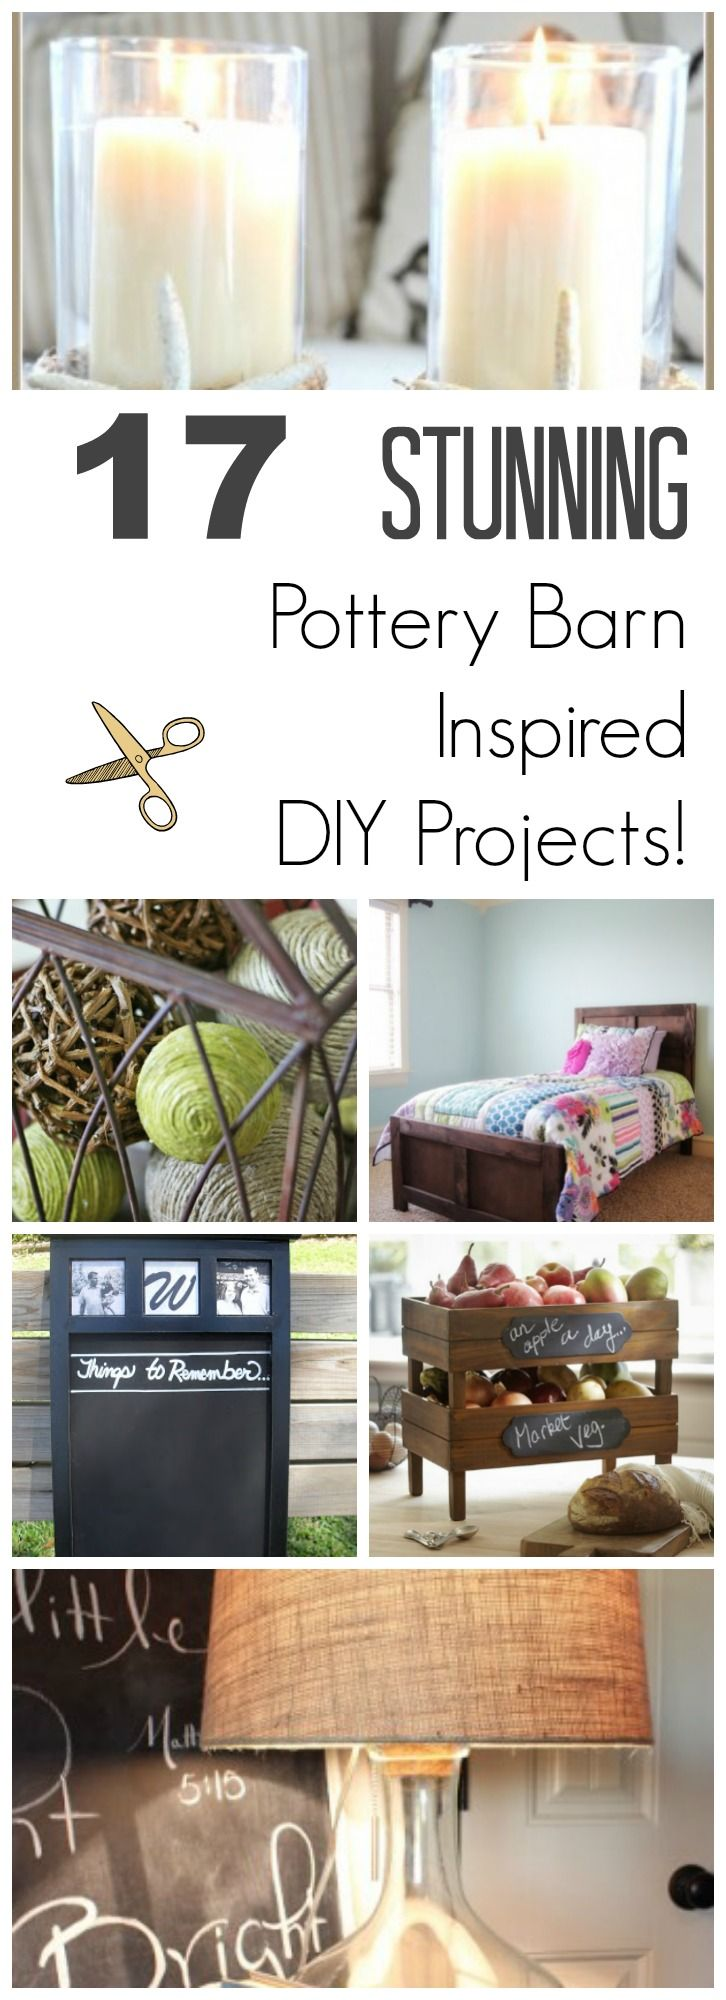 17 stunning diy pottery barn decor projects home decor accessoriesaccessories